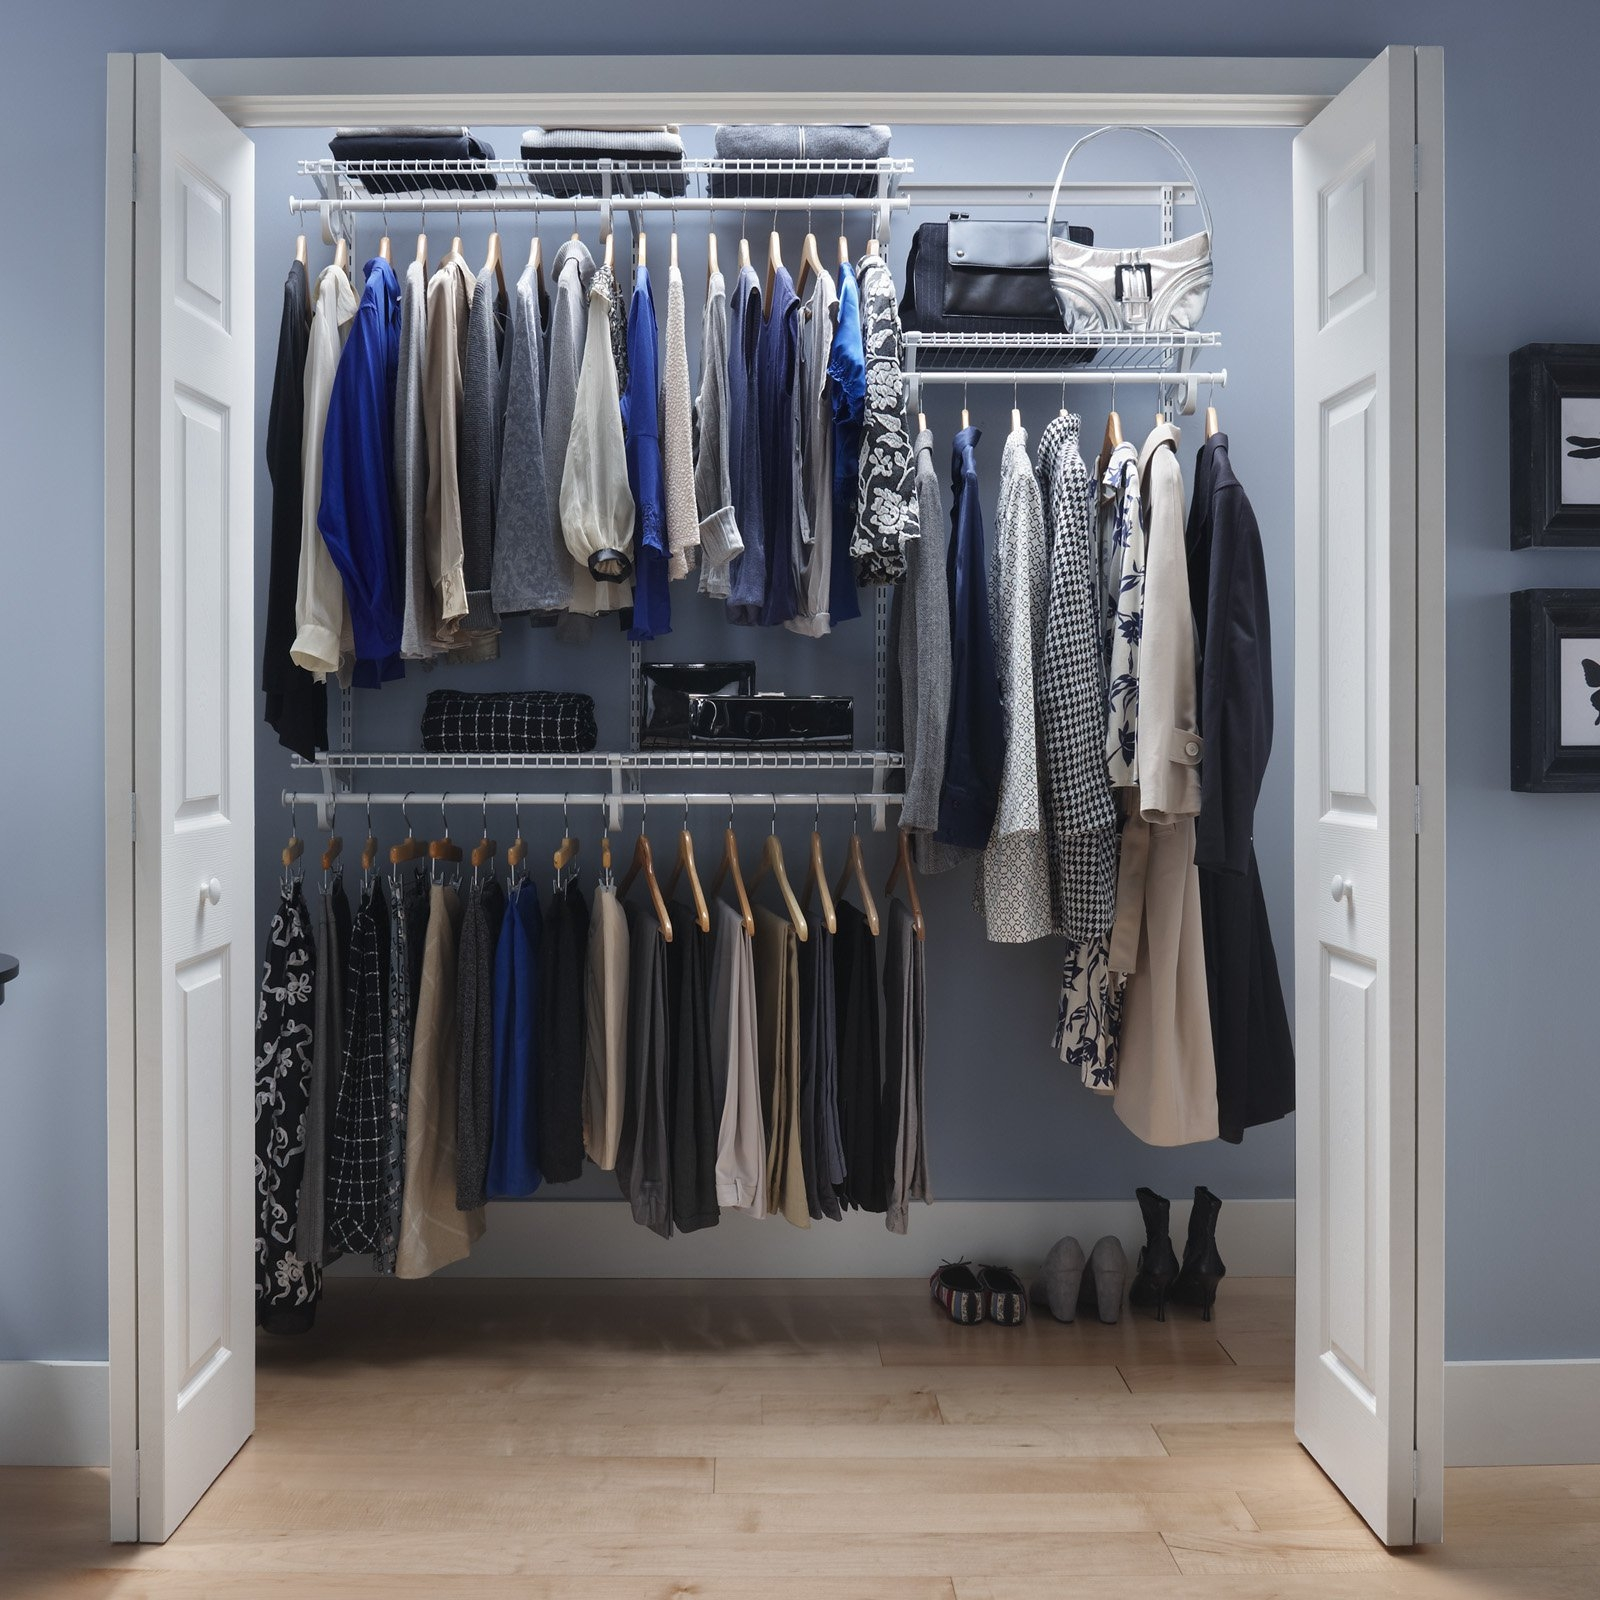 Closets Without Doors - Image of Bathroom and Closet